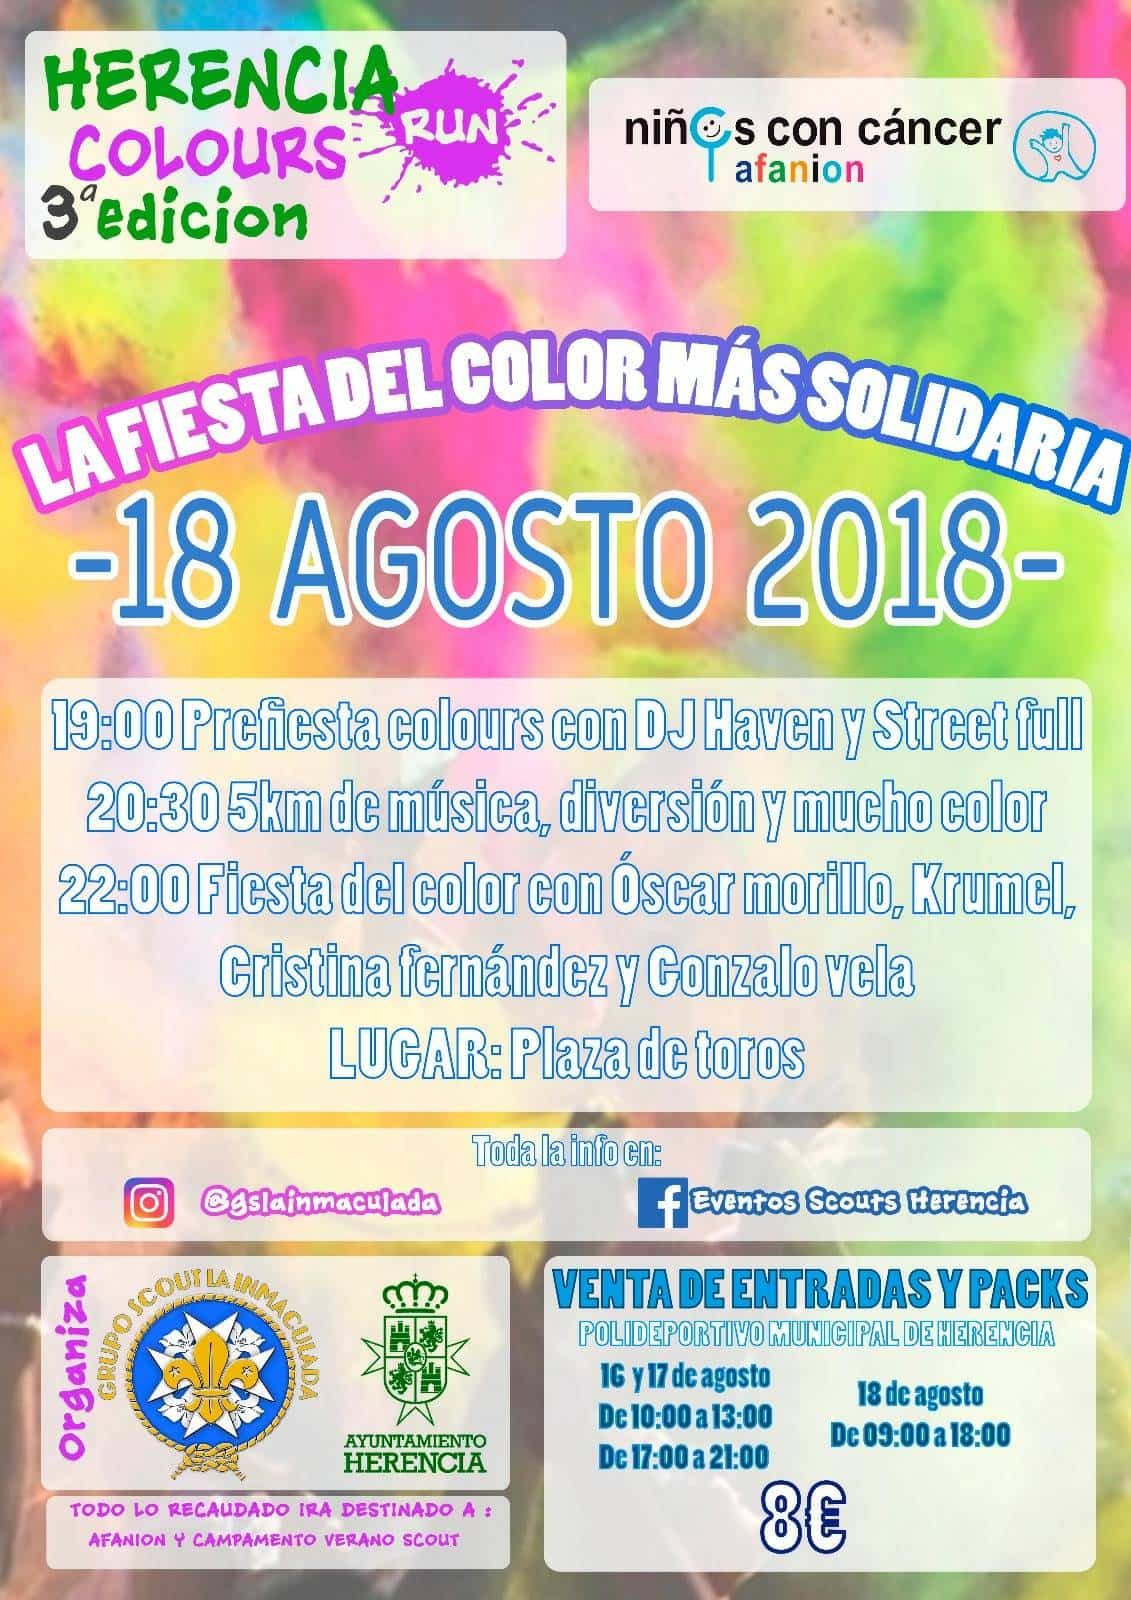 III Herencia Colours Run, la fiesta del color más solidaria 1